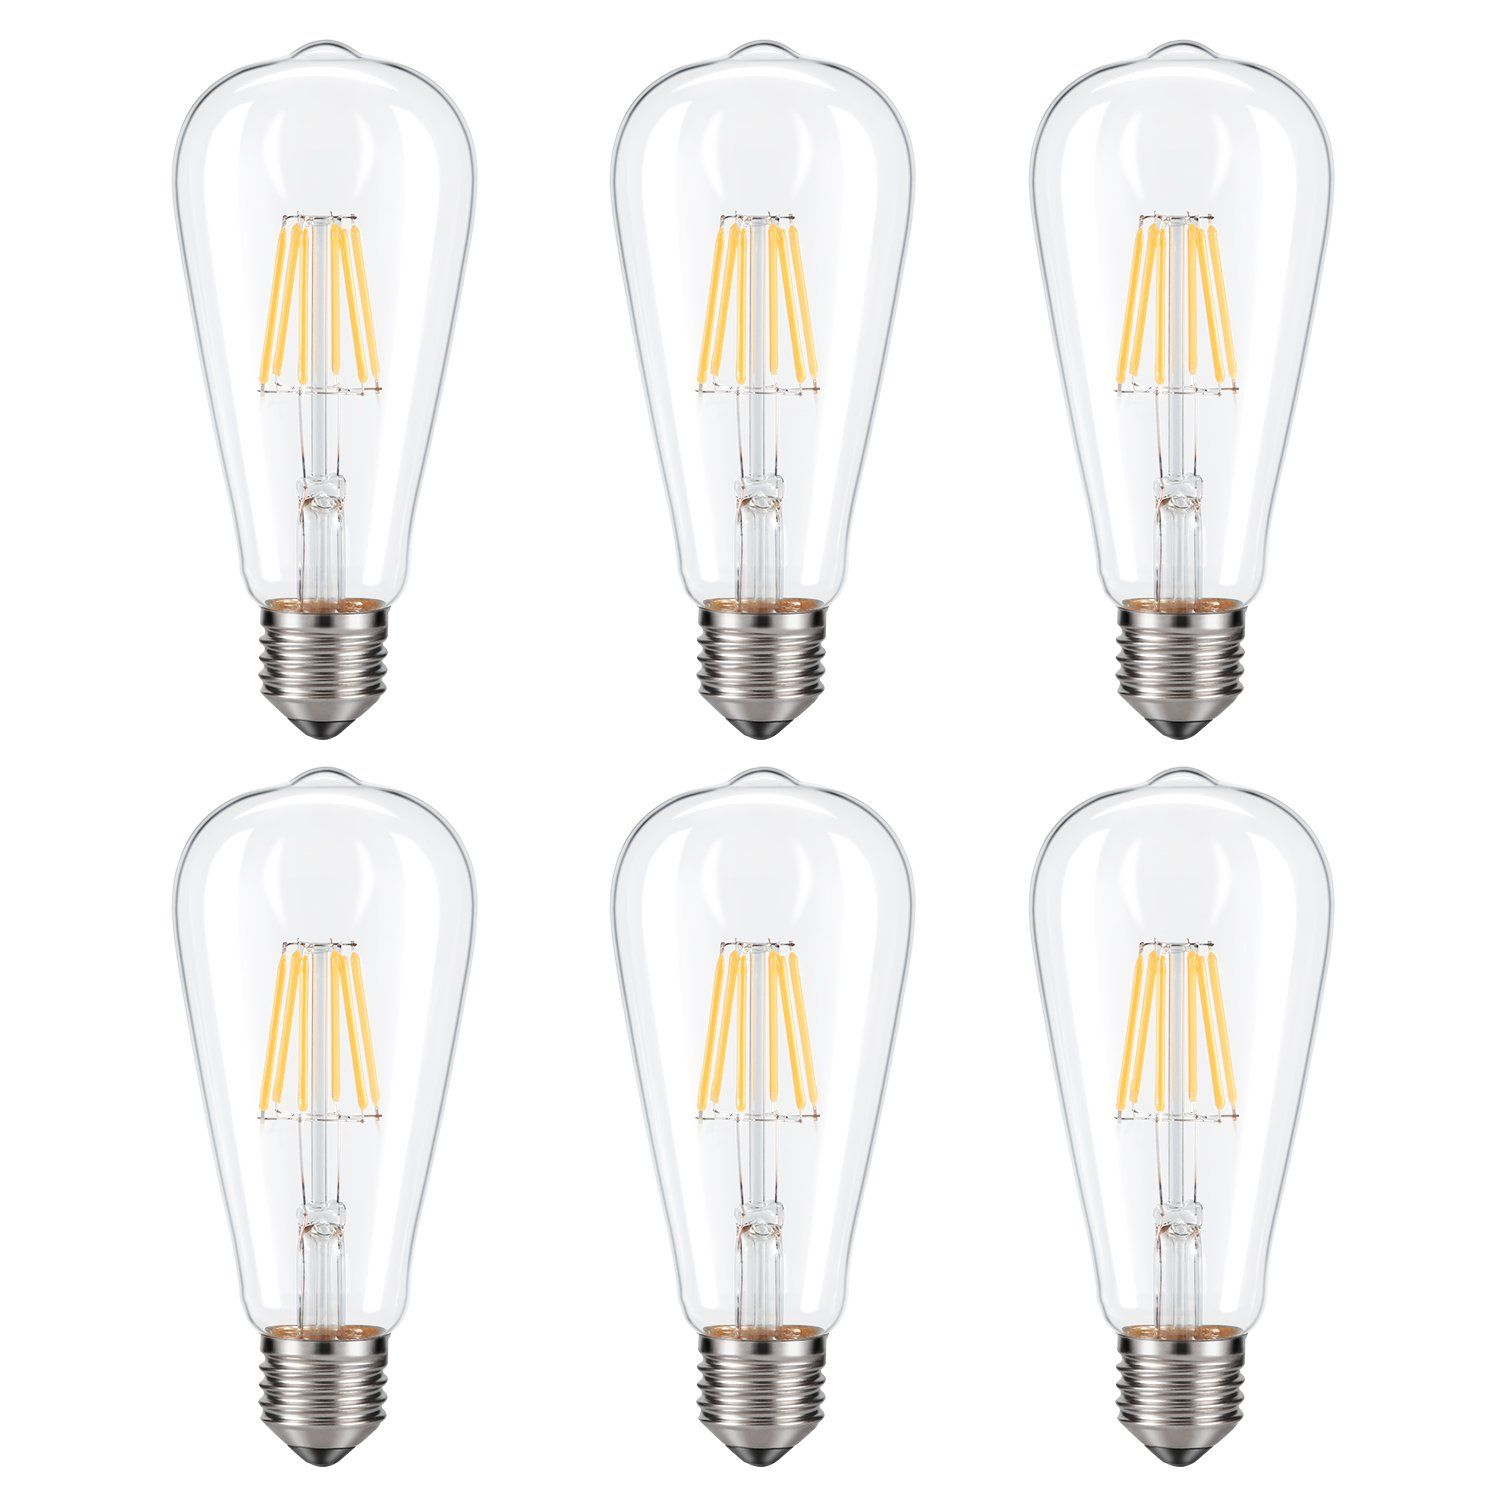 Dimmable Edison Led Bulb Soft Warm White 2700k Kohree 6w Vintage Led Filament Light Bulb 60w Incandescent Eq In 2020 Filament Bulb Lighting Vintage Bulb Led Light Bulb